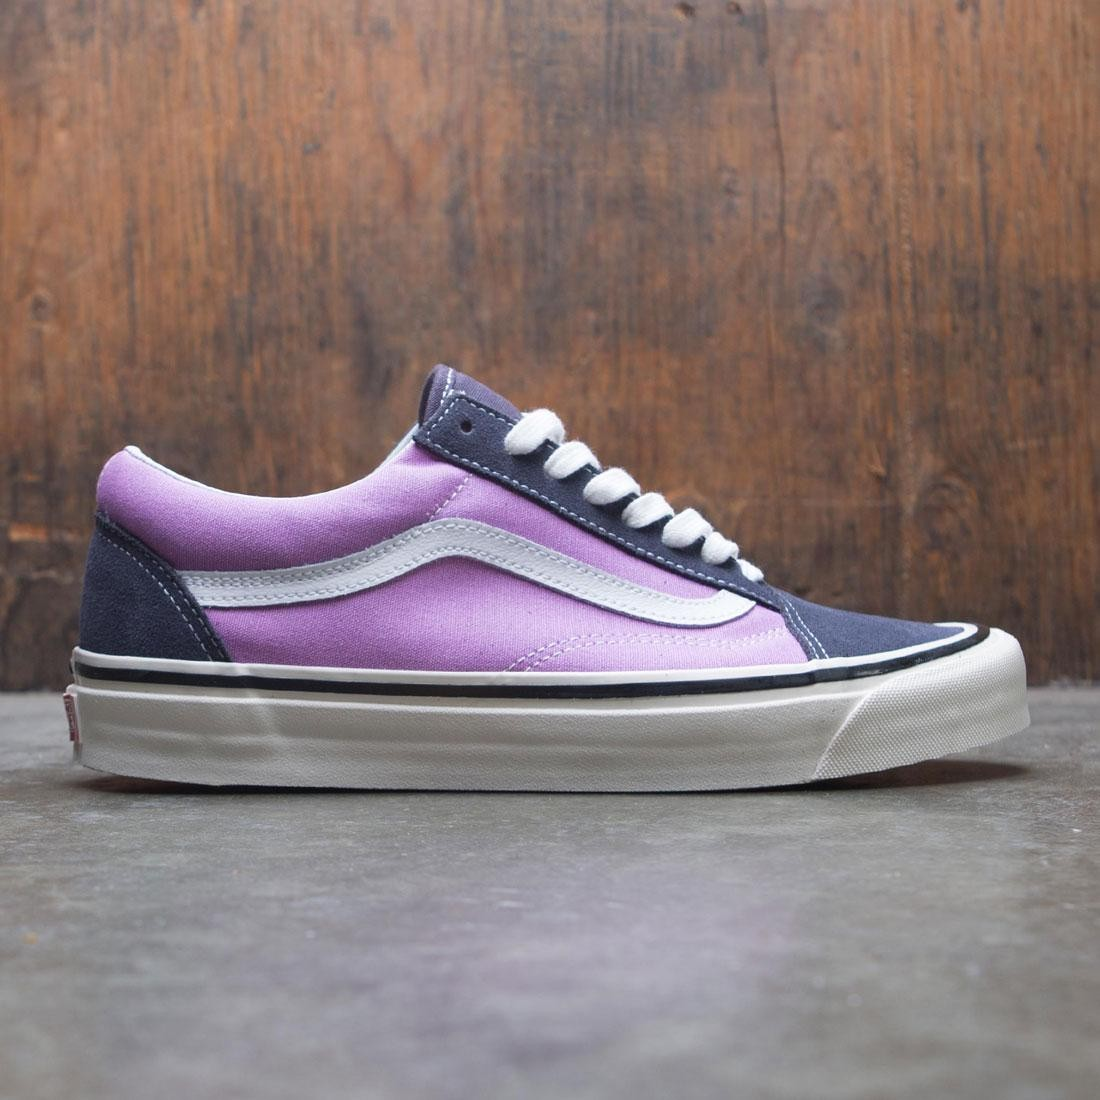 Vans Men Old Skool DX - Anaheim Factory (pink / black)